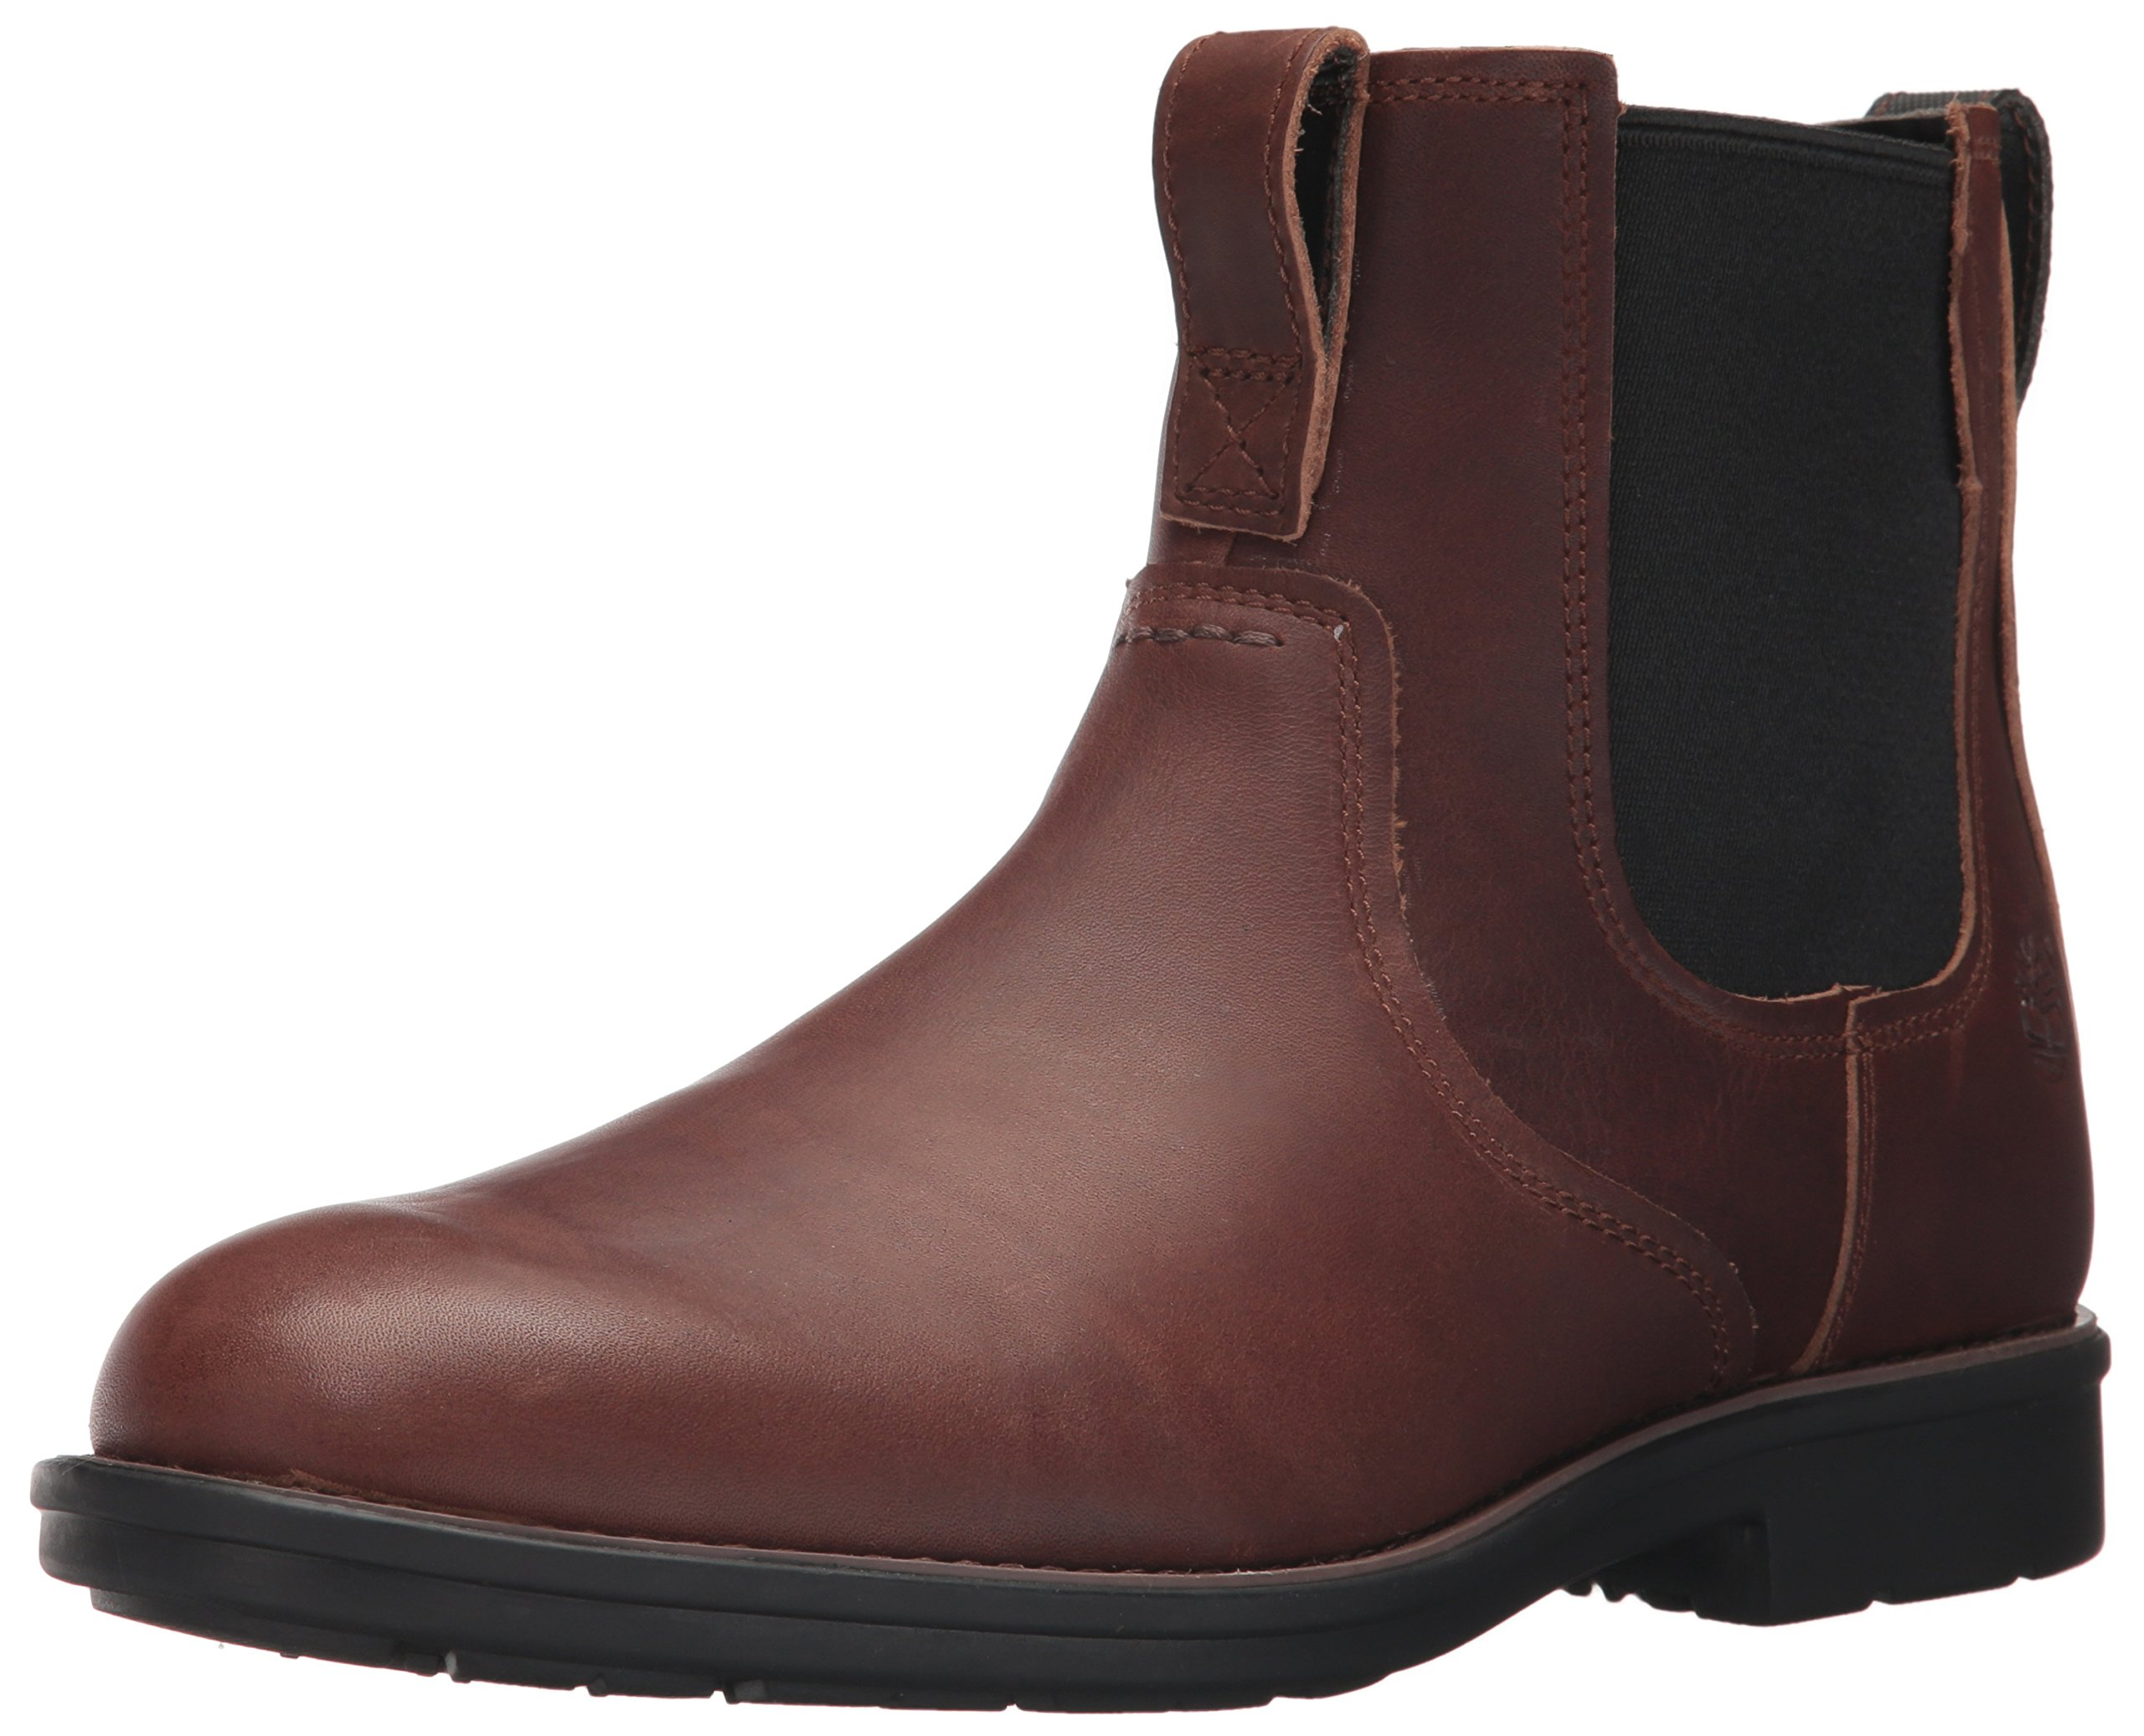 Timberland Men's Carter Notch Chelsea Boot, Dark Brown Full Grain, 14 C US by Timberland (Image #1)